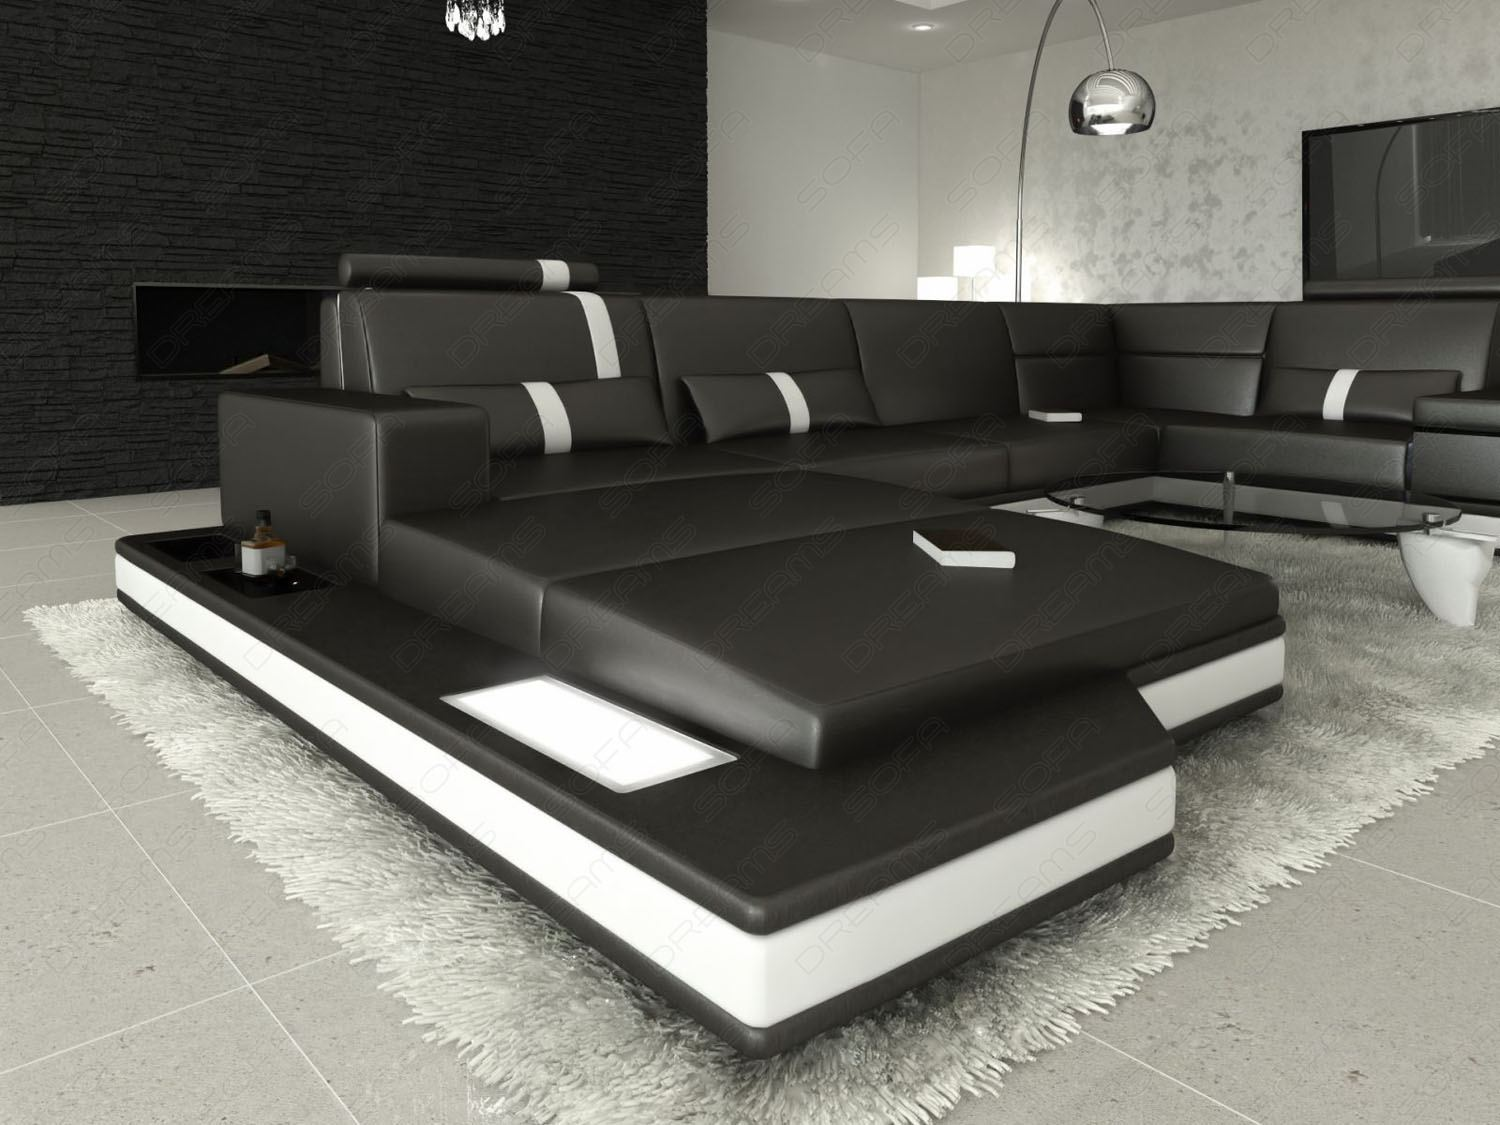 3 sided sectional sofa which is better bed or daybed leather messana couch upholstery